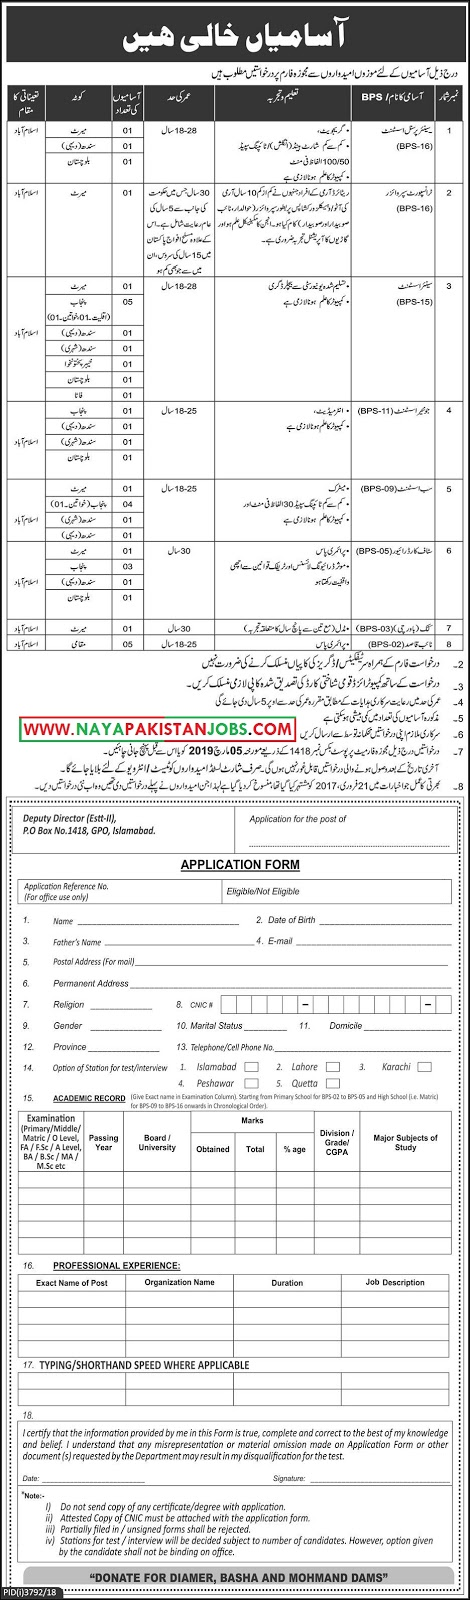 Government Organization Islamabad Jobs 2019 Feb Application Form